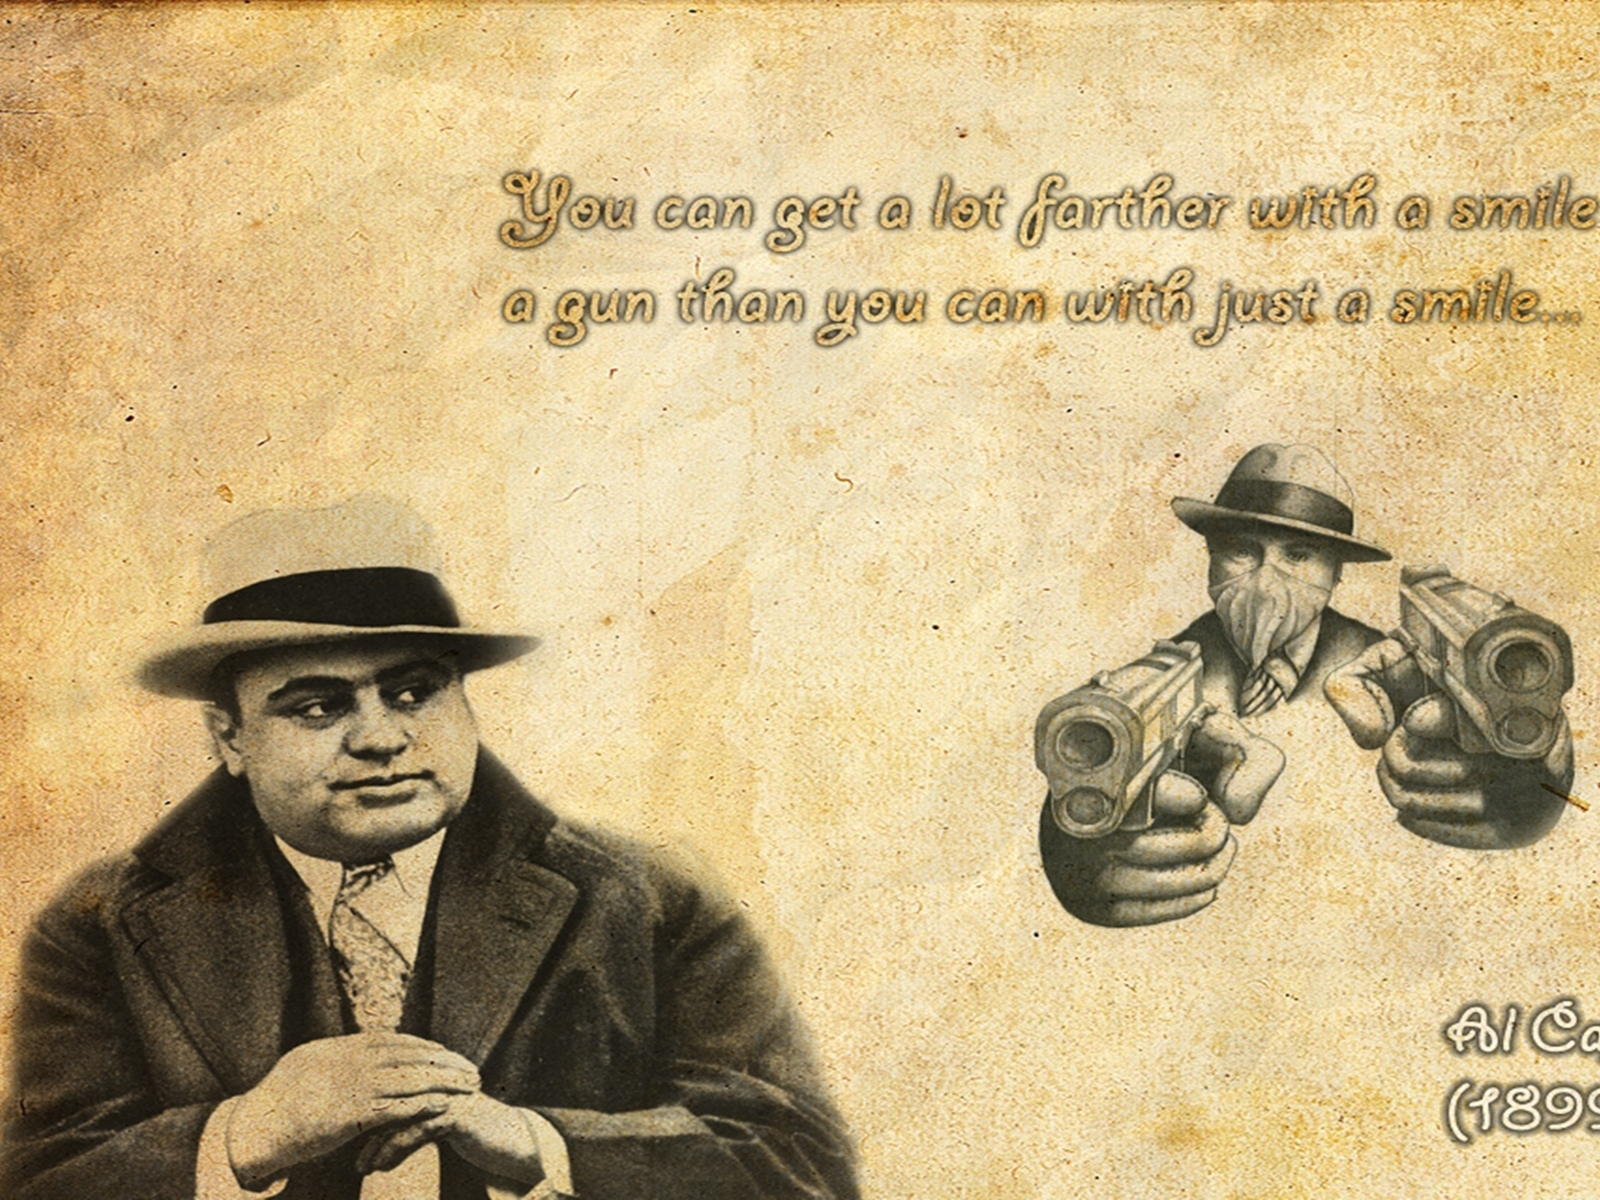 the life of al capone Alphonse gabriel capone, also known as al capone, (january 17, 1899 – january 25, 1947) was an american gangster who attained fame during the prohibition era.